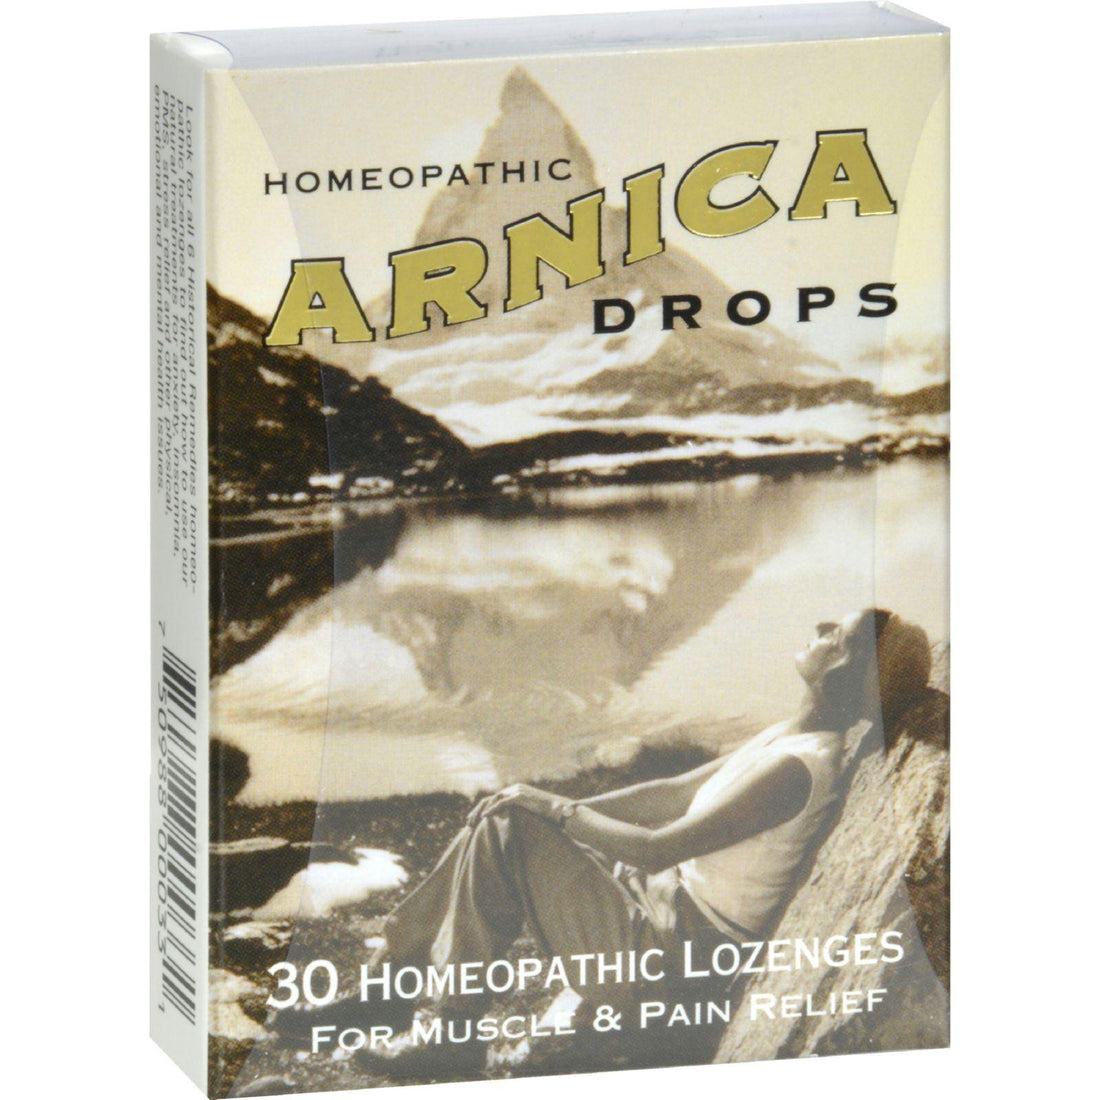 Mother Mantis: Historical Remedies Homeopathic Arnica Drops Repair And Relief Lozenges - Case Of 12 - 30 Lozenges Historical Remedies